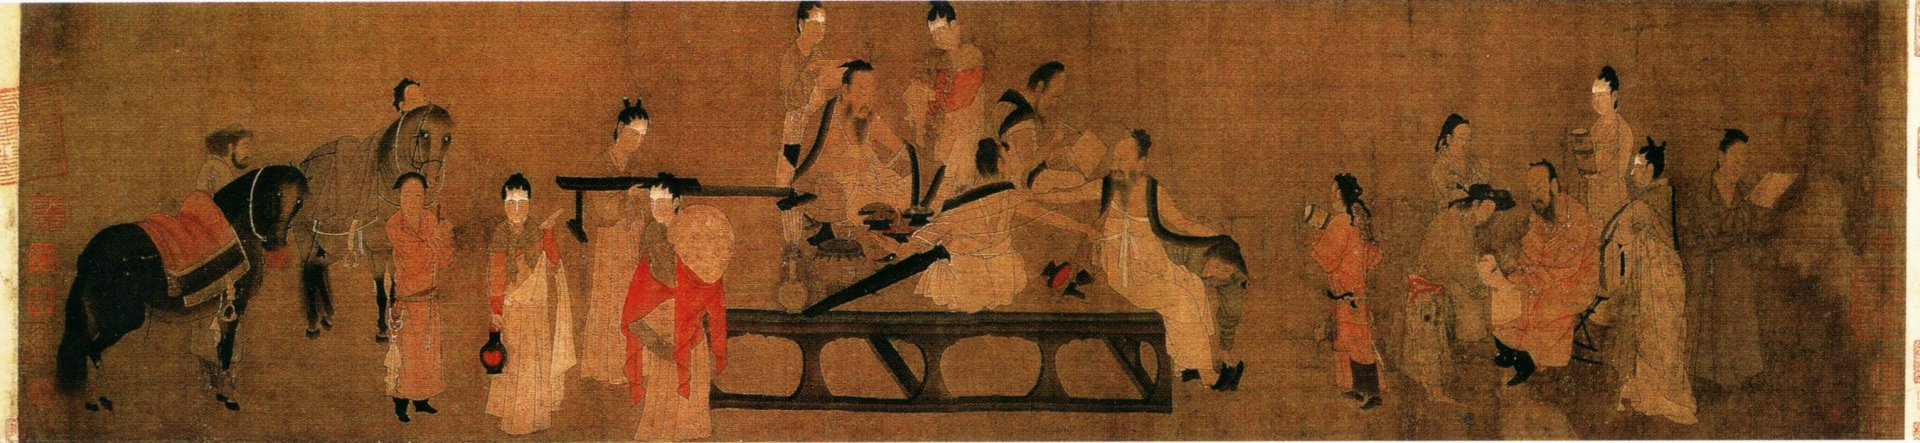 янцзы хуа 515-86071_1c0027a.Ancient_Chinese_Painting.jpg